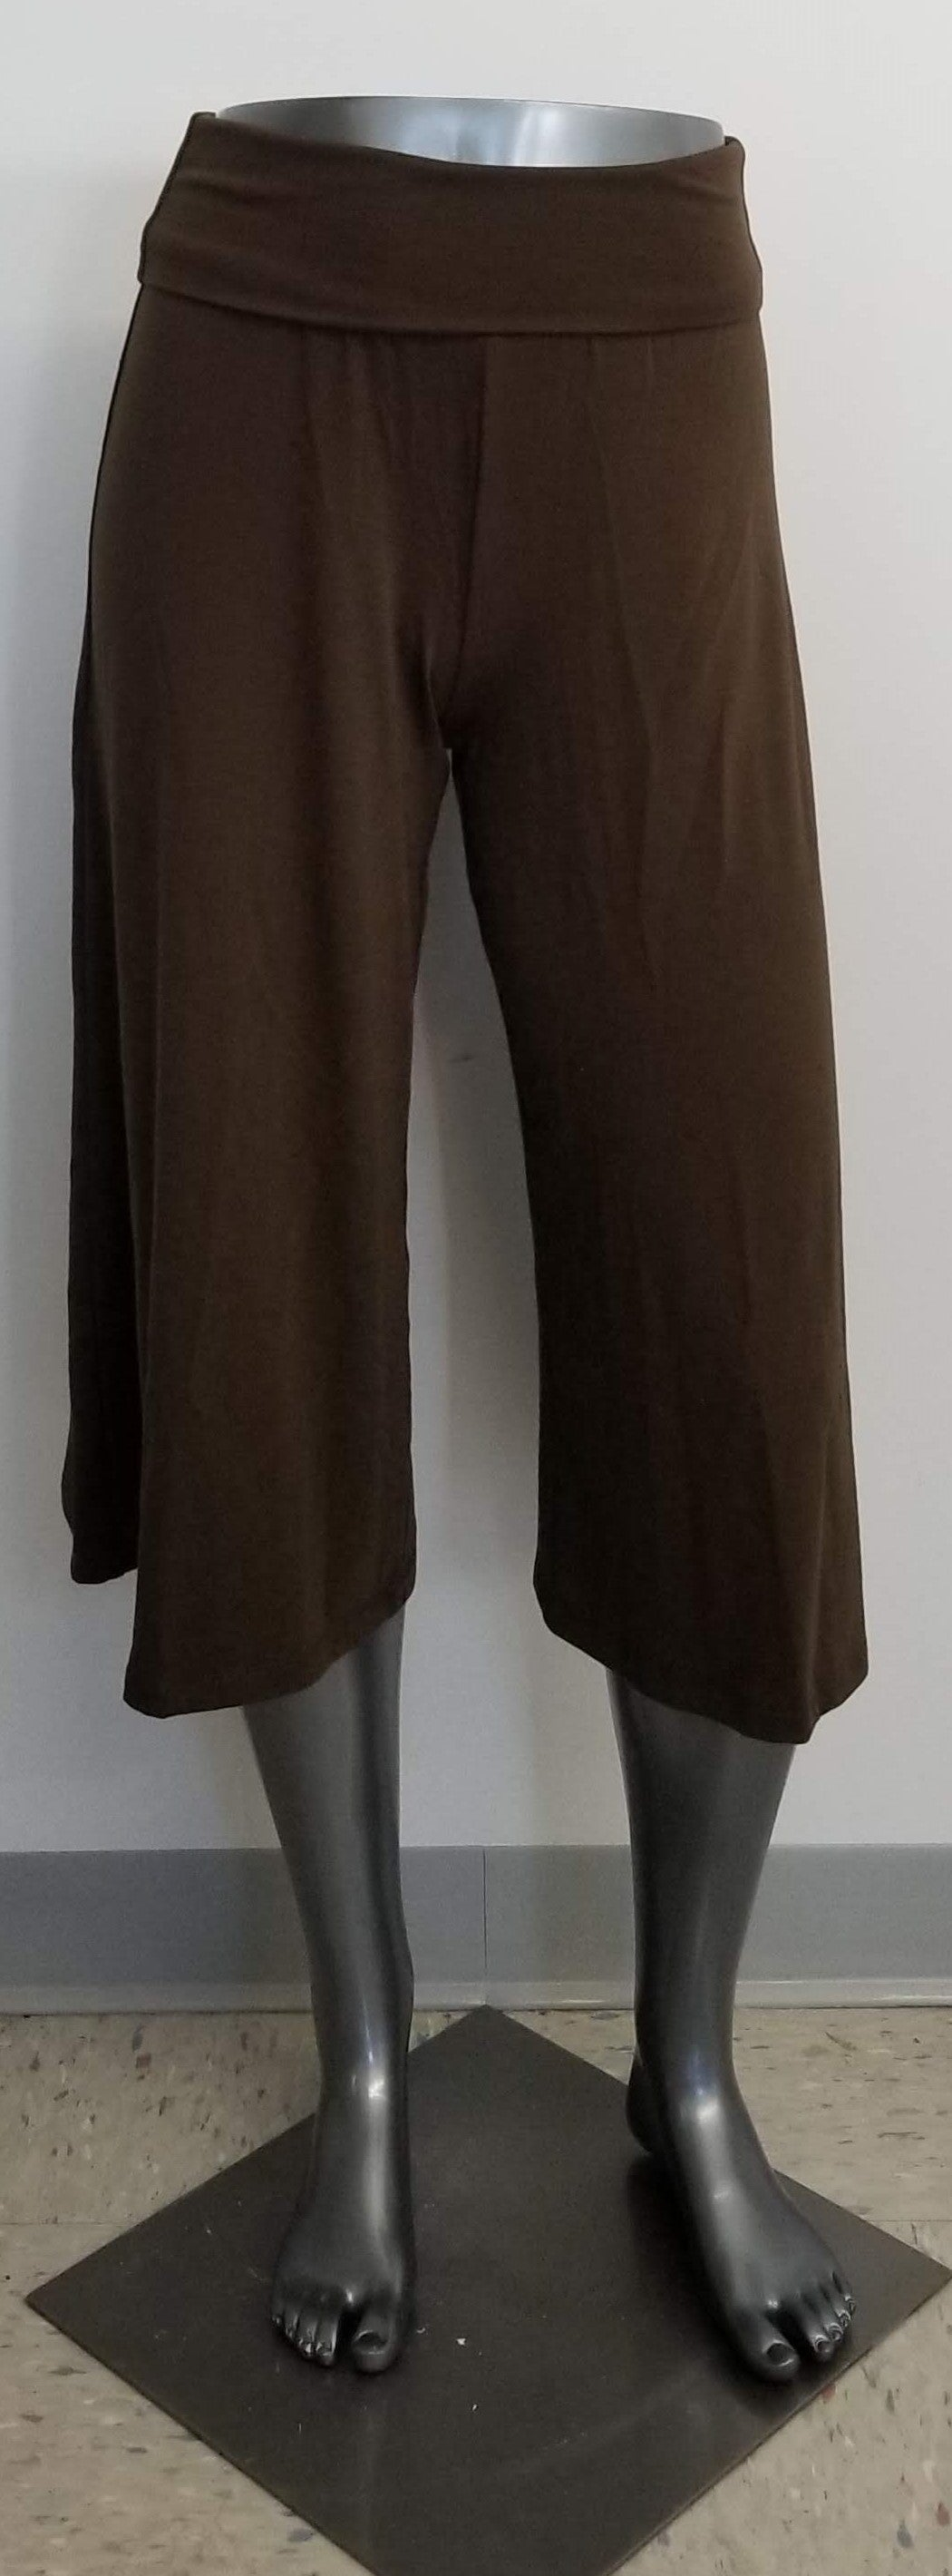 Mossimo Women's Culottes/Goucho style pants - Spanish Brown XS